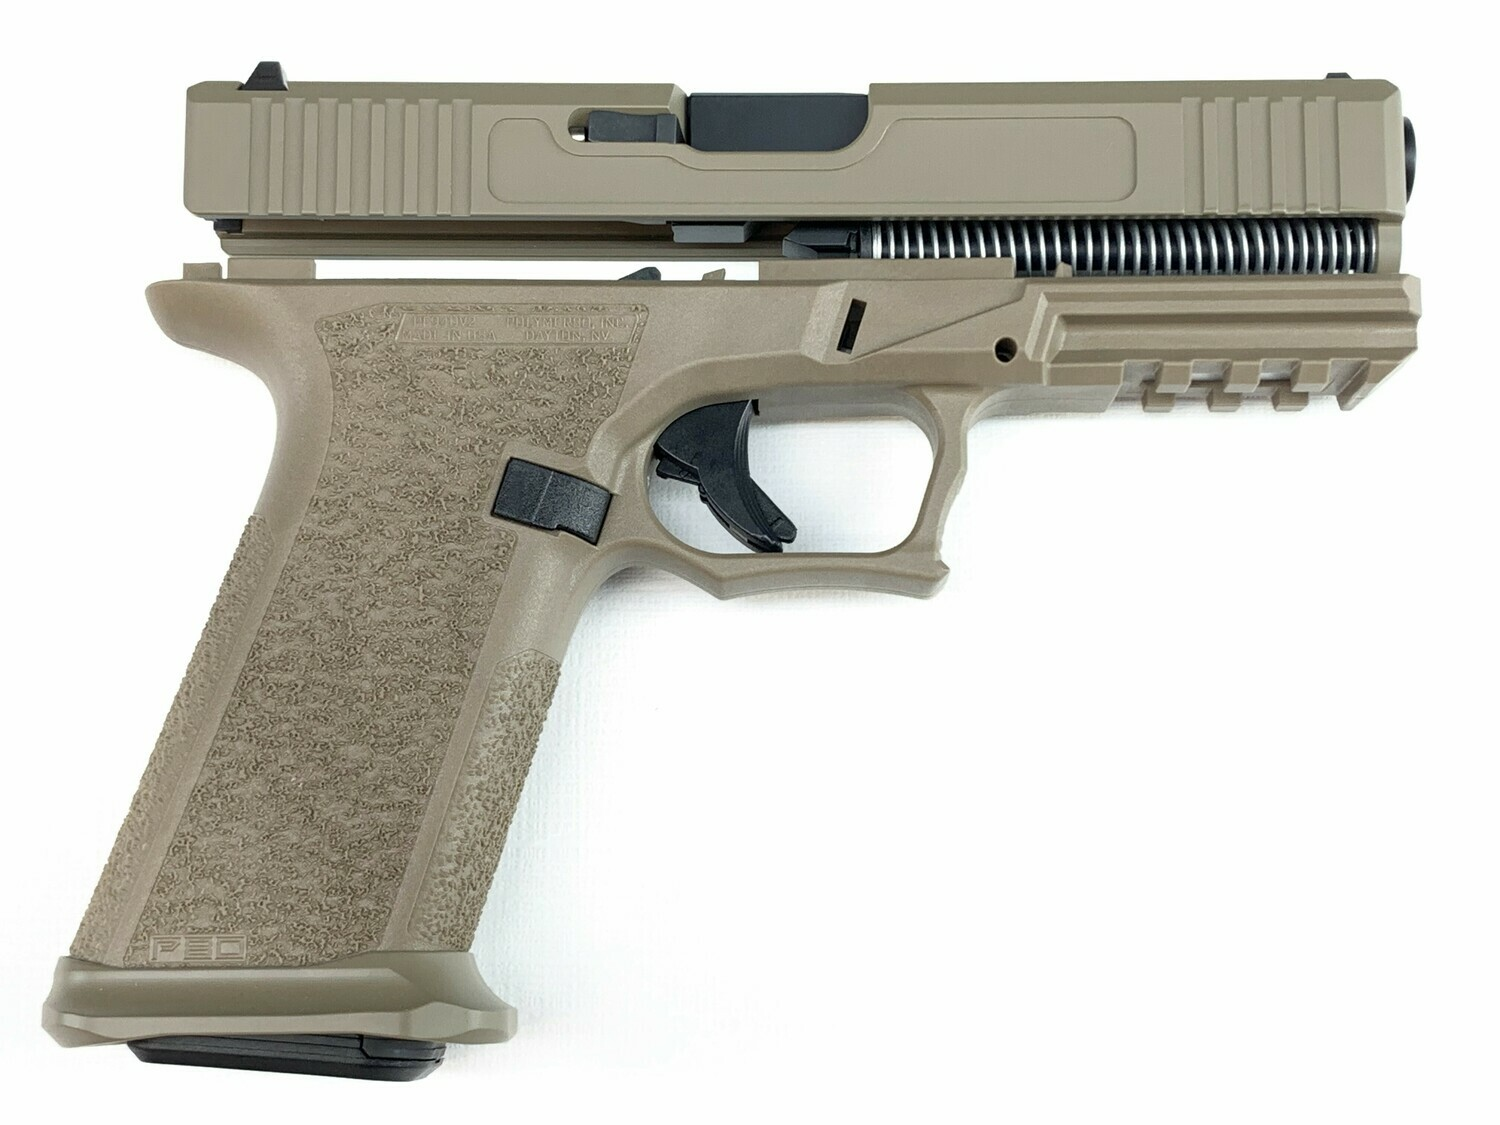 Patriot G17 80% Pistol Build Kit 9mm - Polymer80 PF940V2 - FDE - Steel City Magwell - 10rd Mag